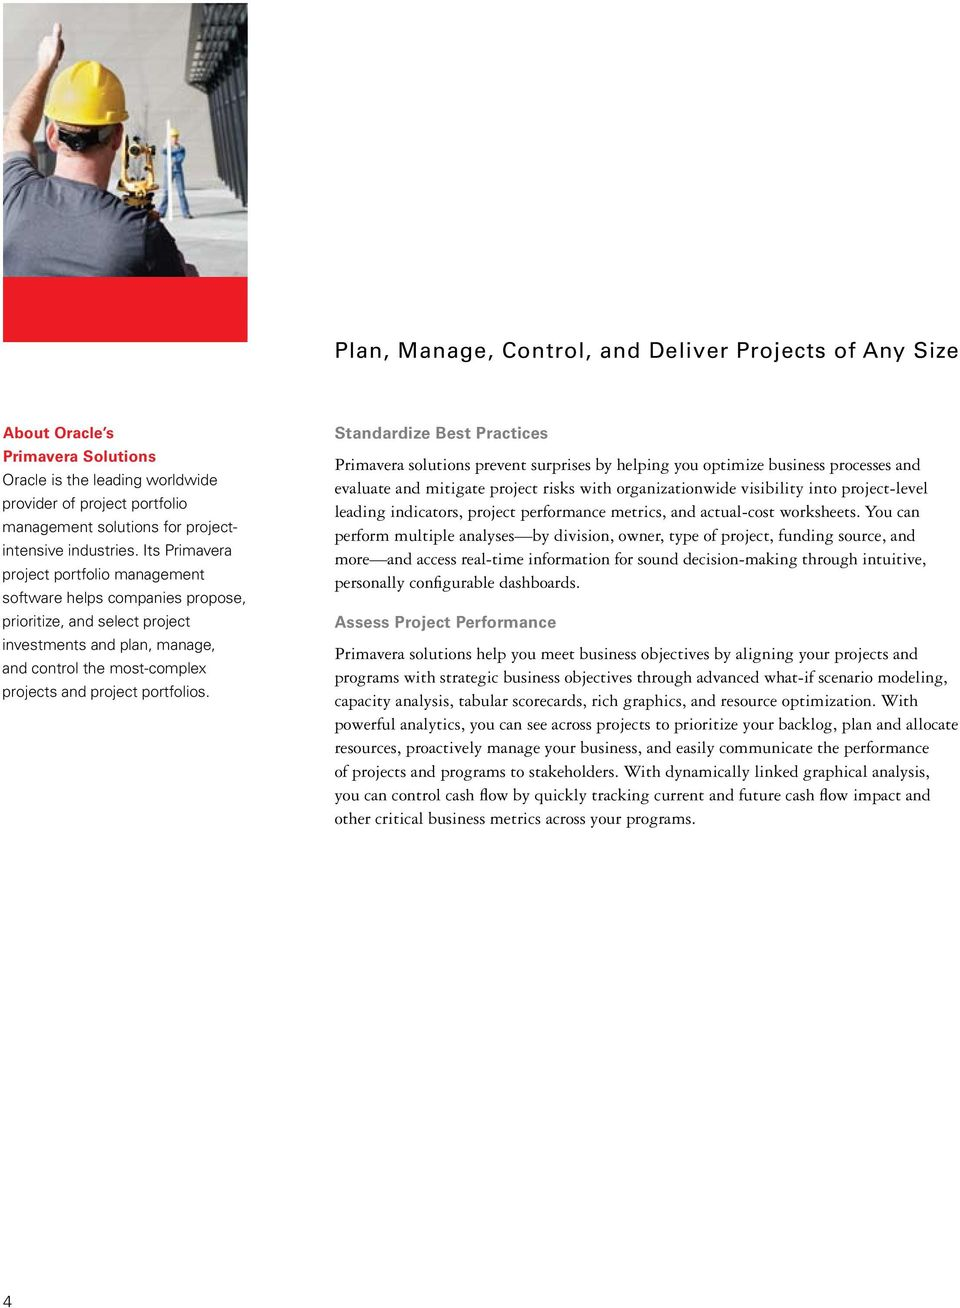 Its Primavera project portfolio management software helps companies propose, prioritize, and select project investments and plan, manage, and control the most-complex projects and project portfolios.